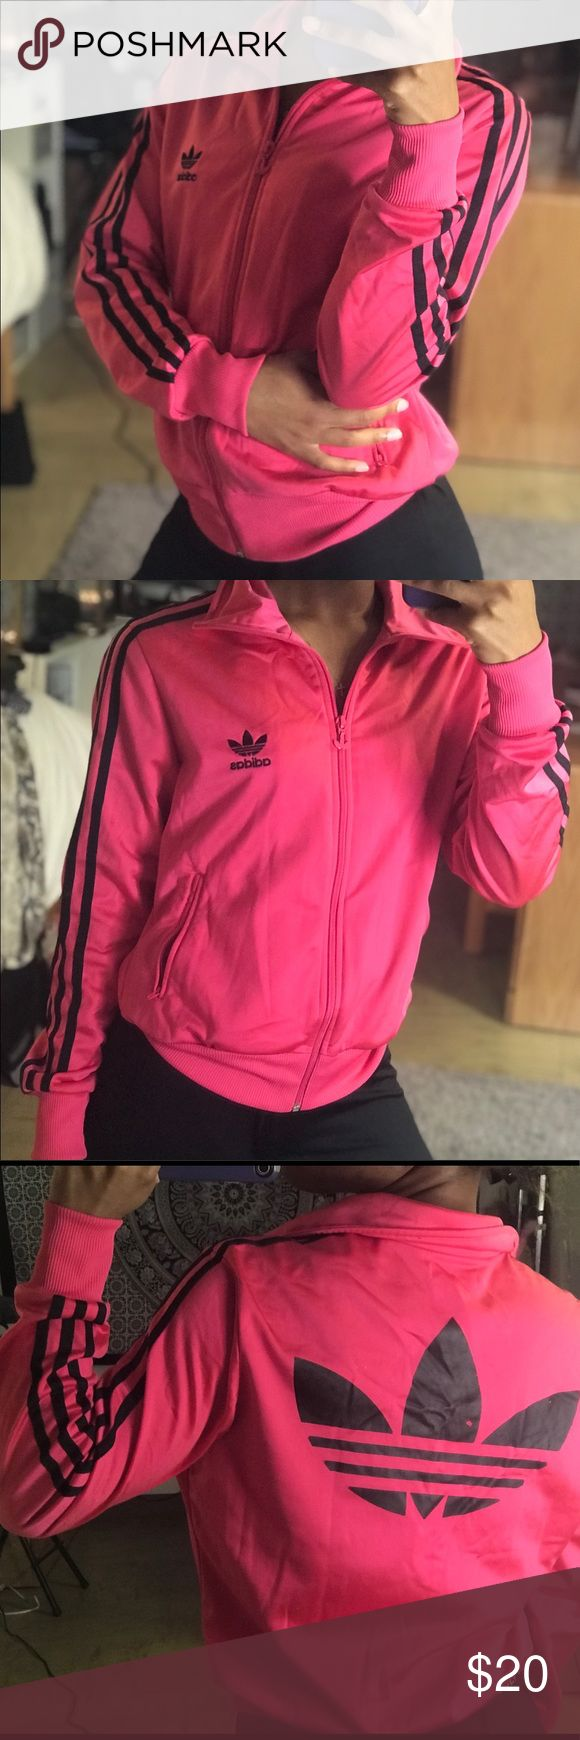 Pink adidas zip up jacket This is authentic and real. Size medium. Not sure if it's a kids medium or adult medium. I usually wear a size small in women's. Price is FIRM adidas Tops Sweatshirts & Hoodies